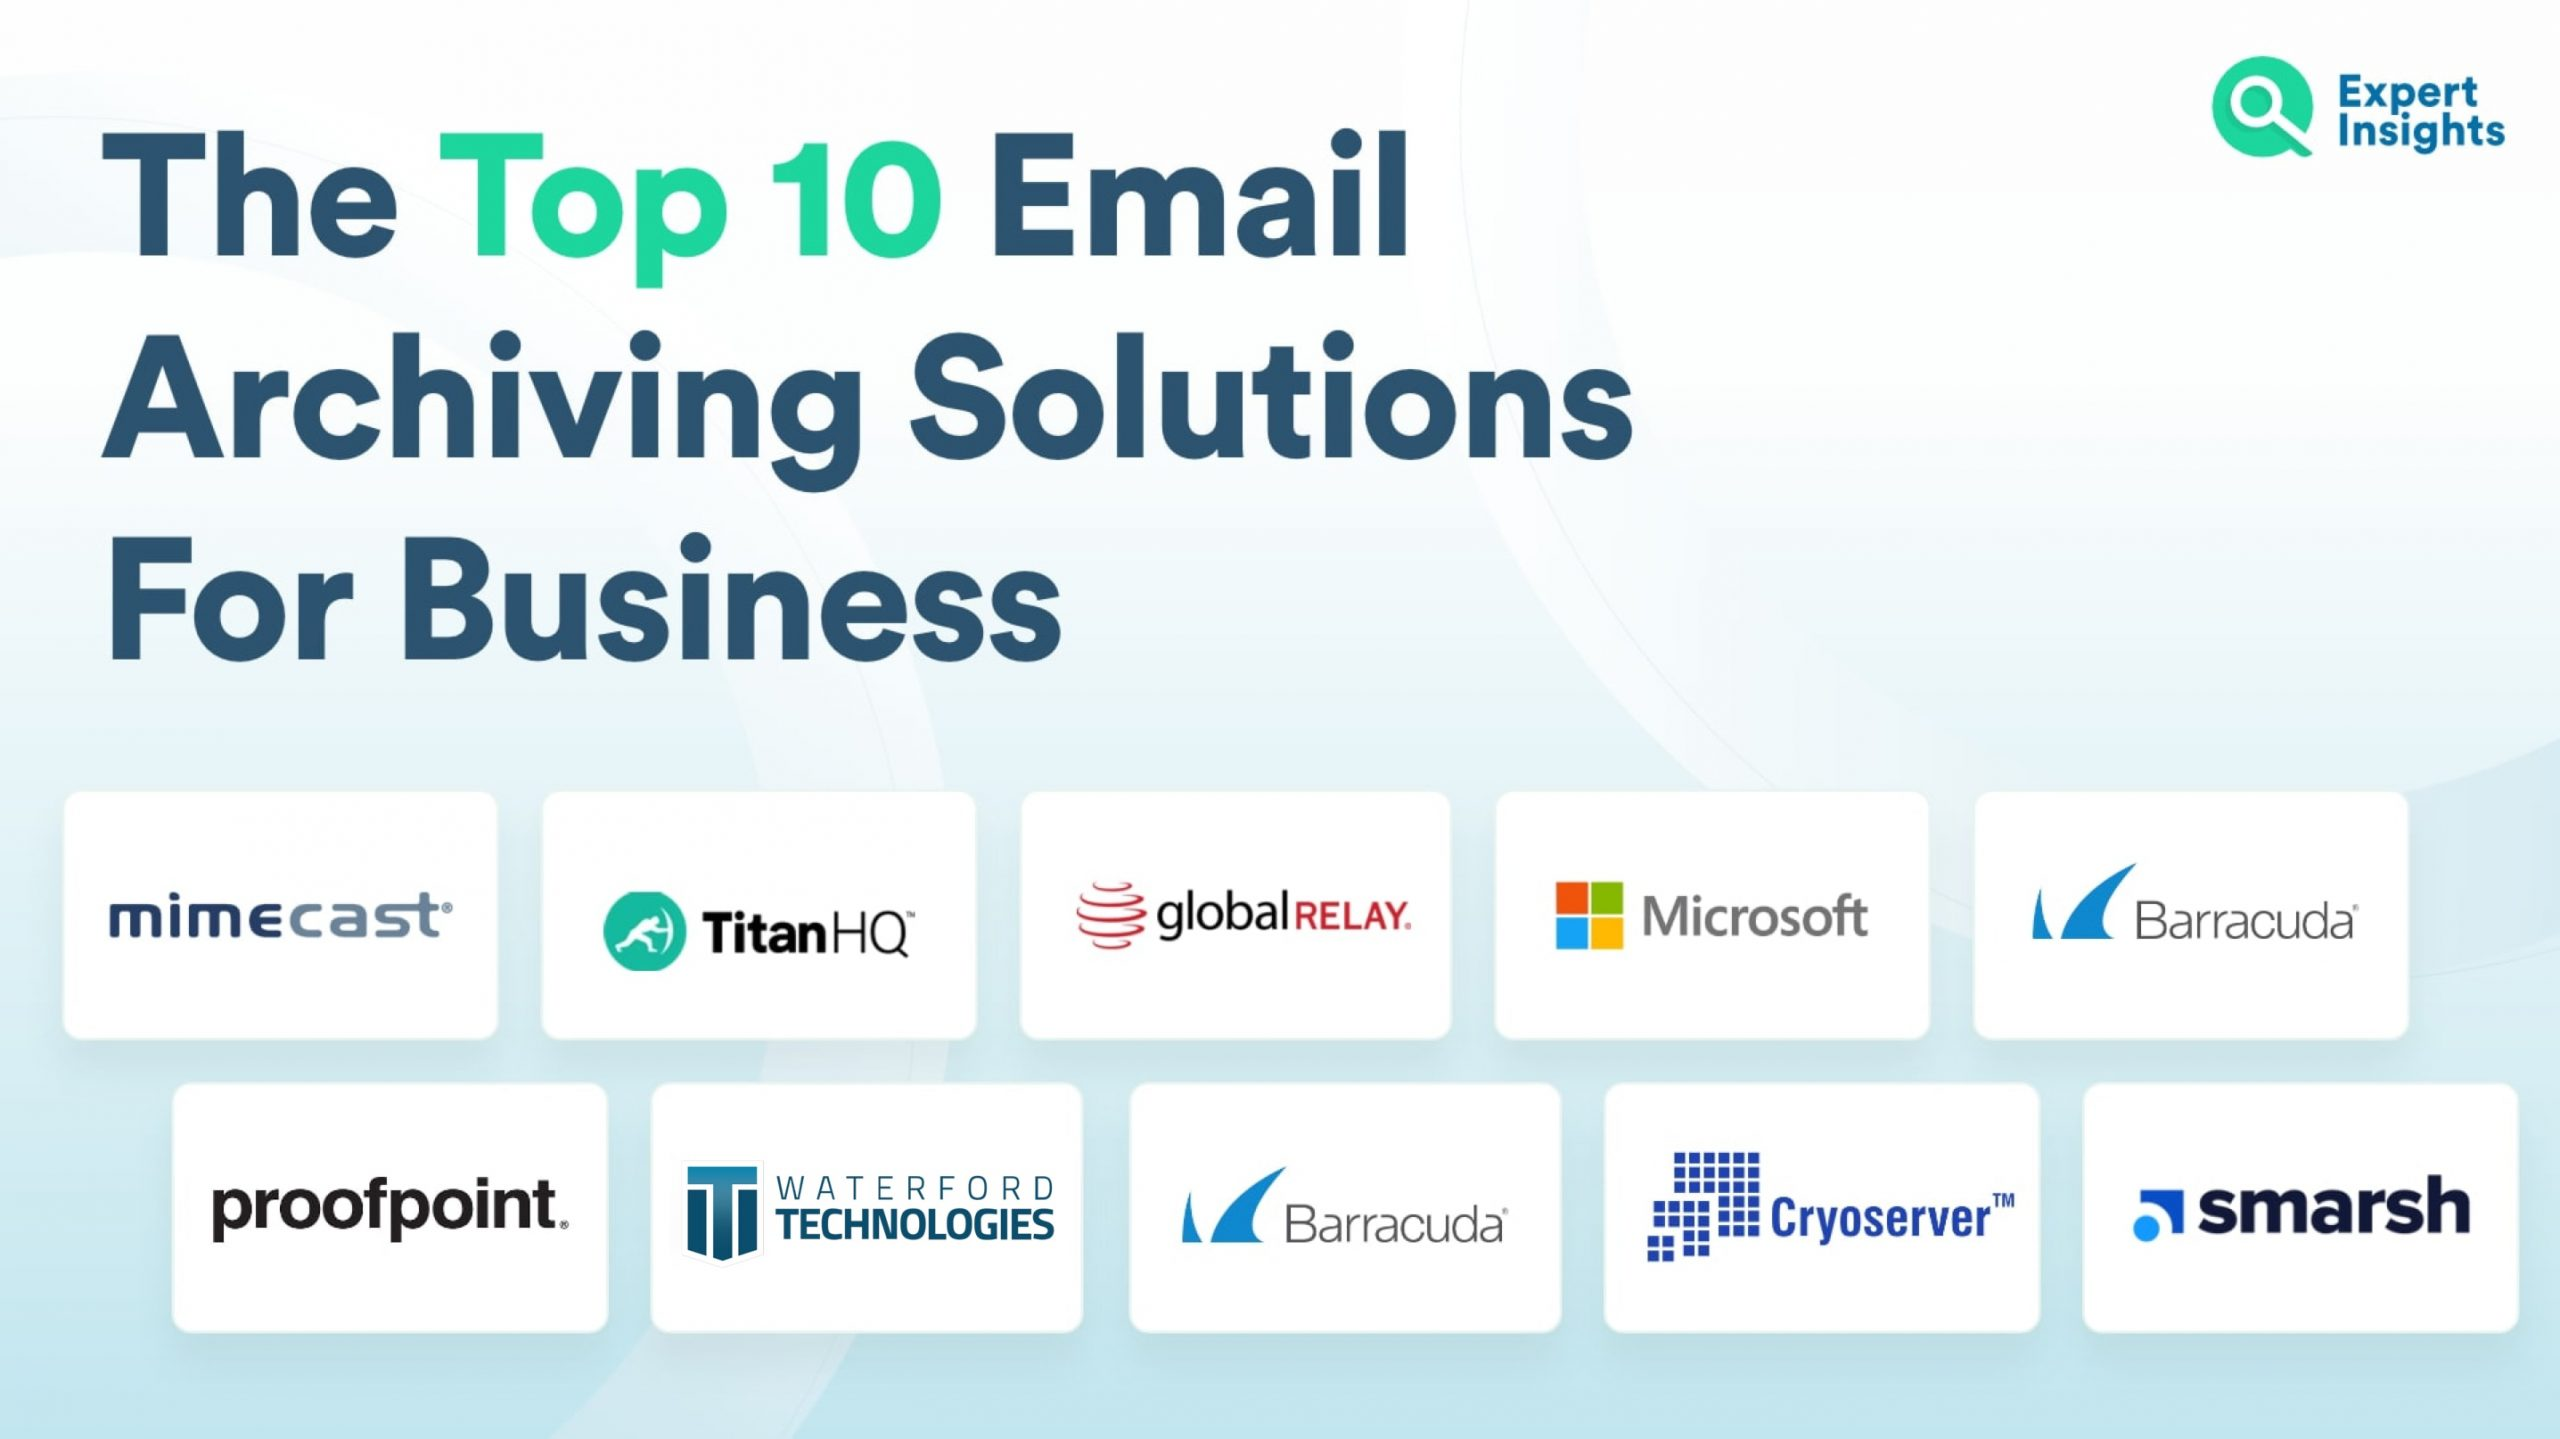 The Top 10 Email Archiving Solutions | Expert Insights